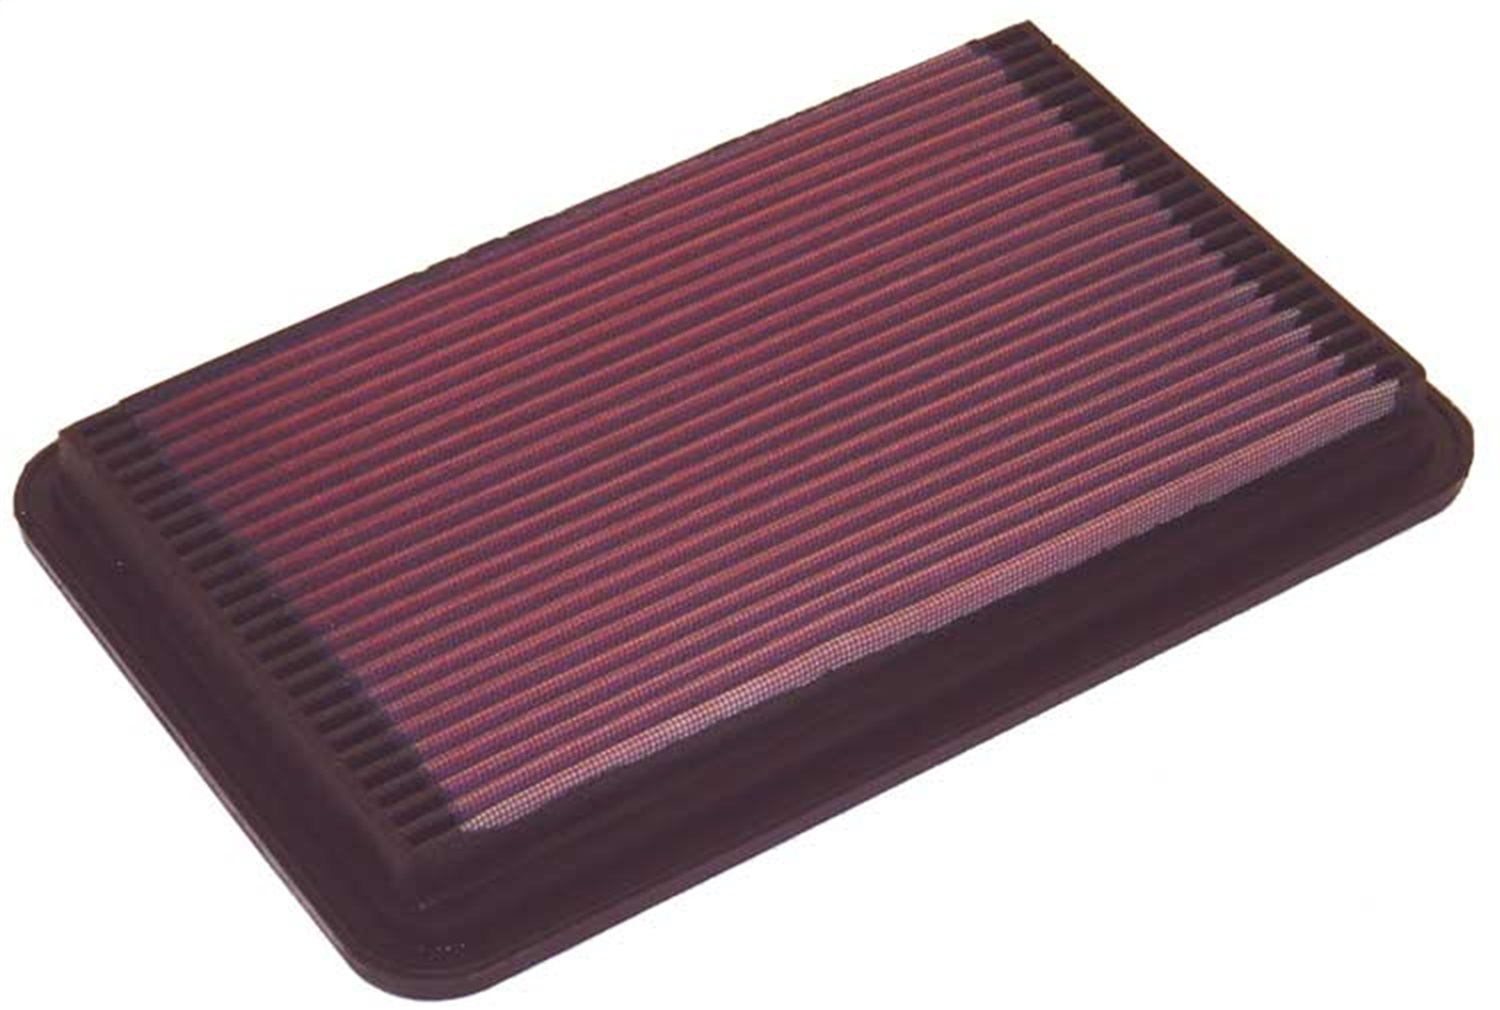 K&N Filters 33-2108 Air Filter Fits 96-04 Amigo Axiom Passport Rodeo 33-2108